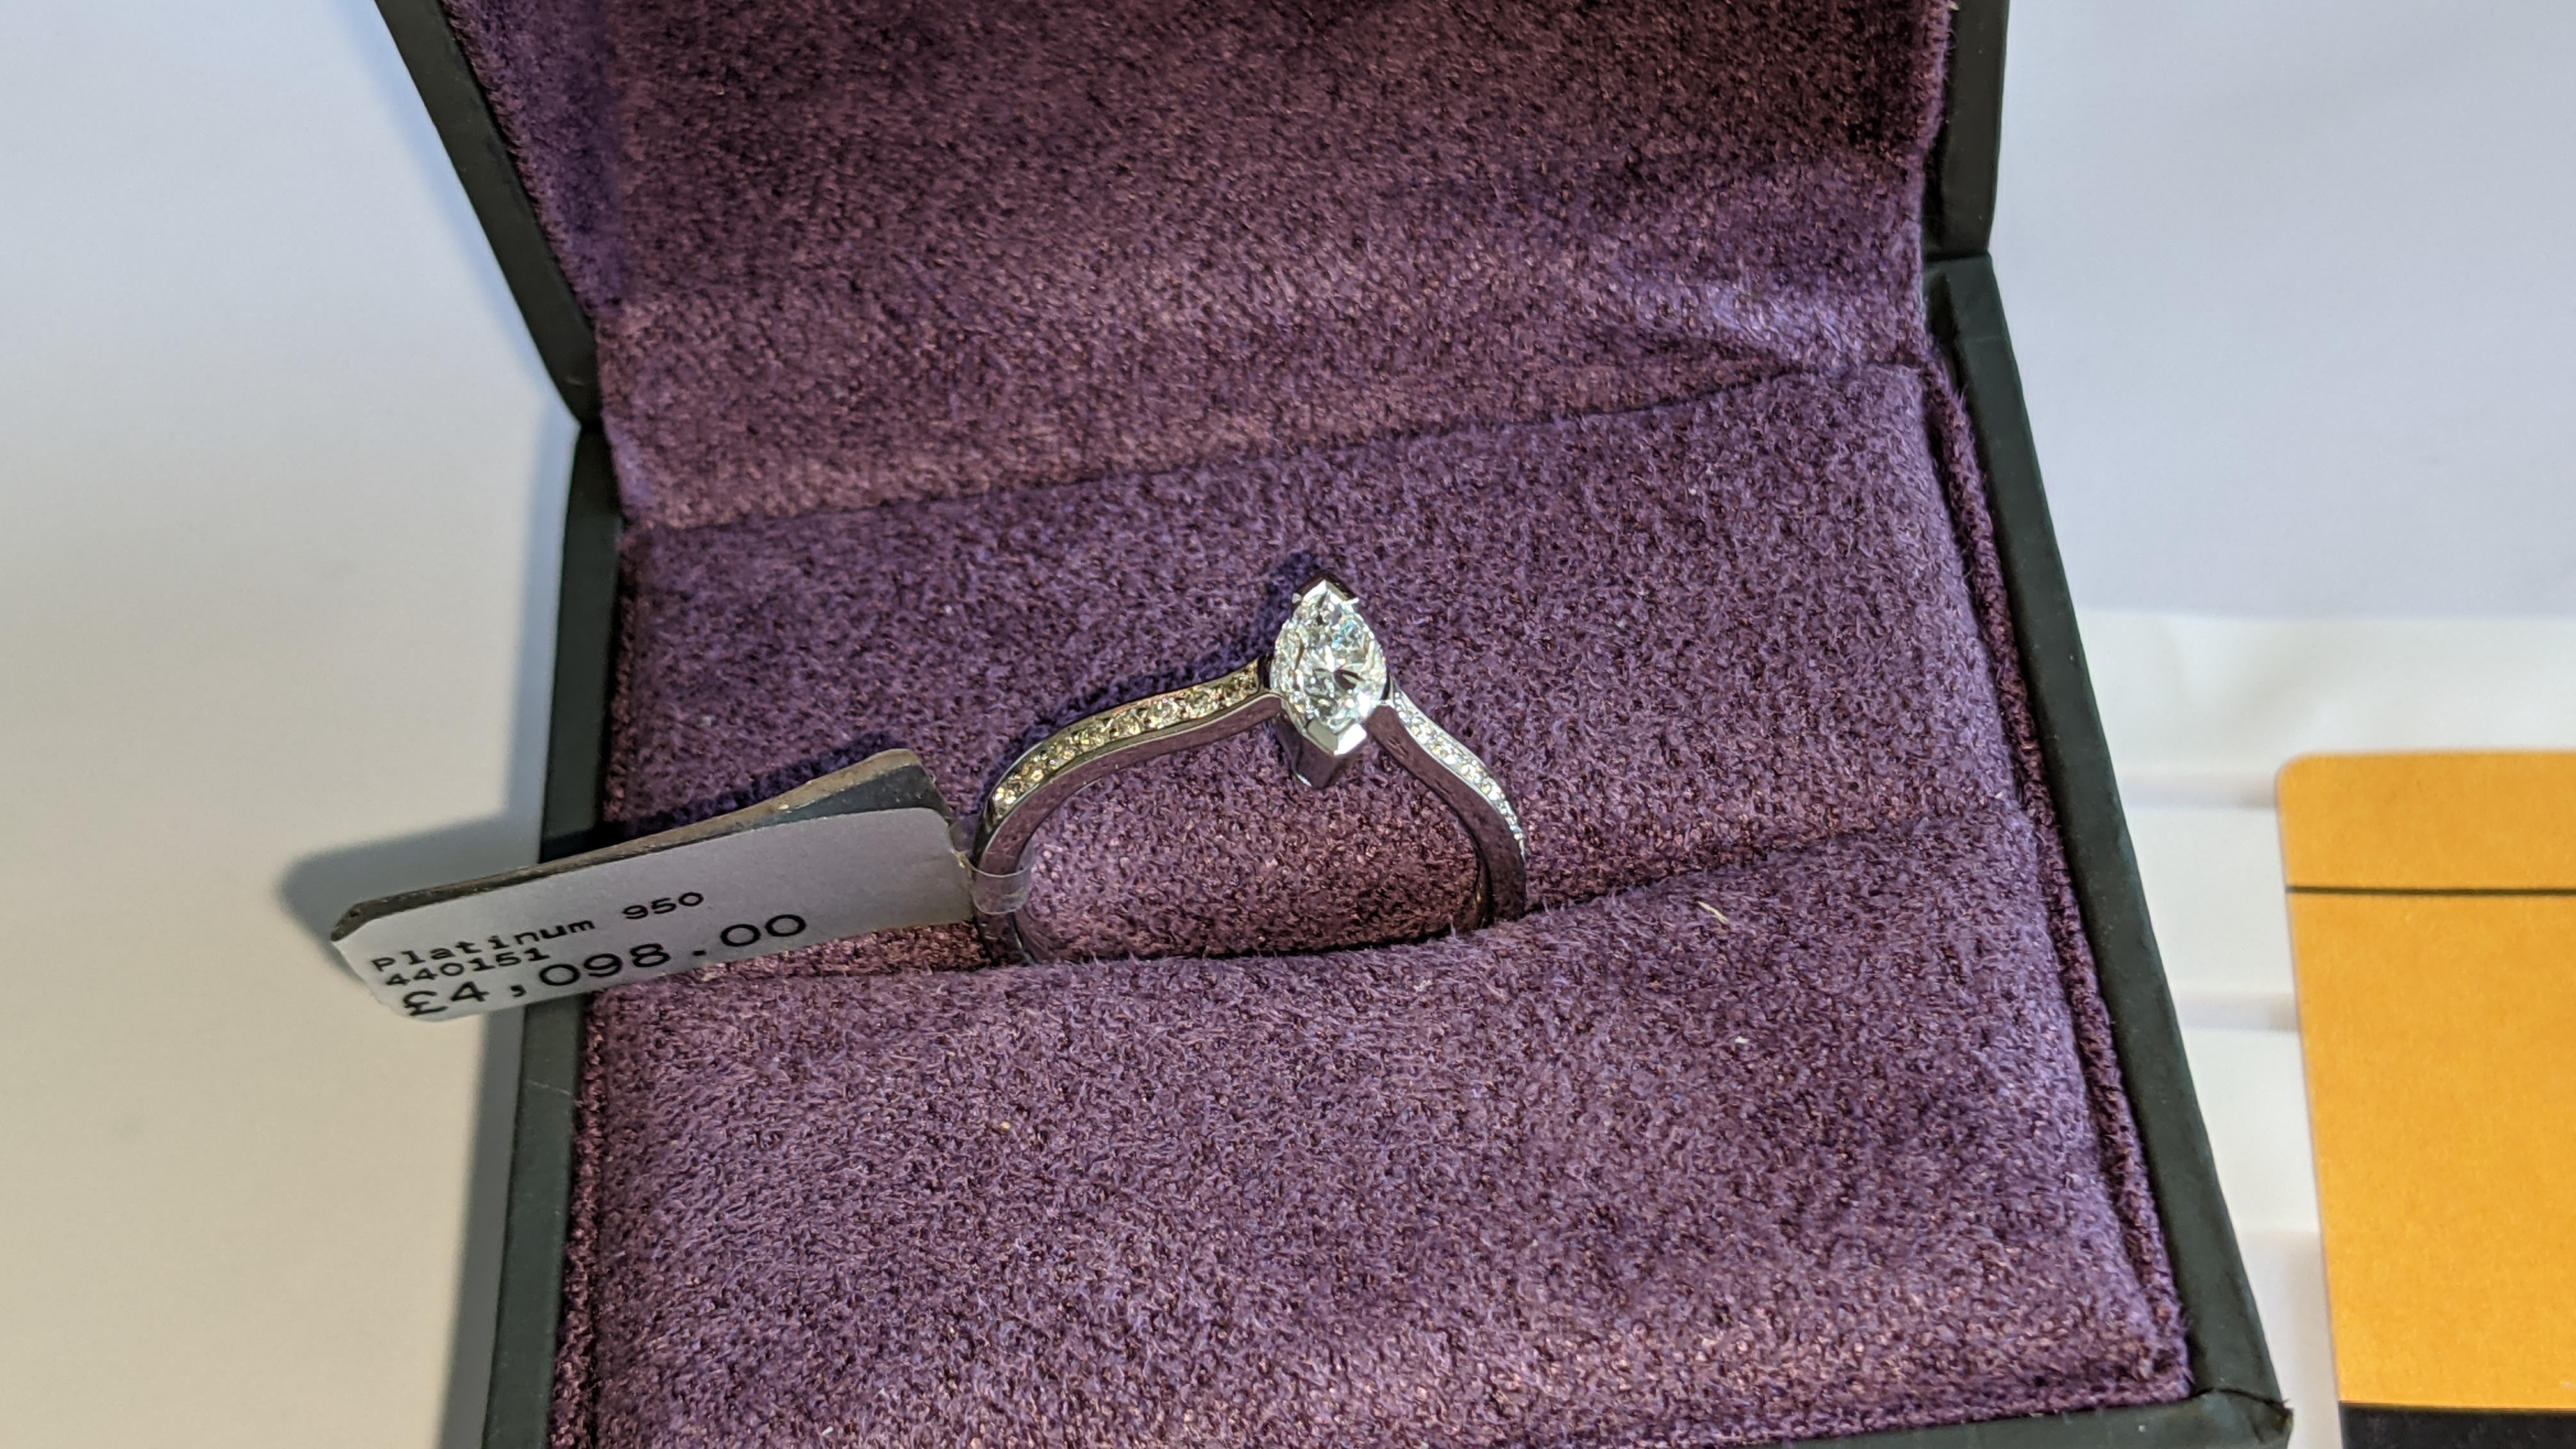 Platinum 950 ring with marquise shaped central diamond plus diamonds on the shoulders either side, t - Image 4 of 16